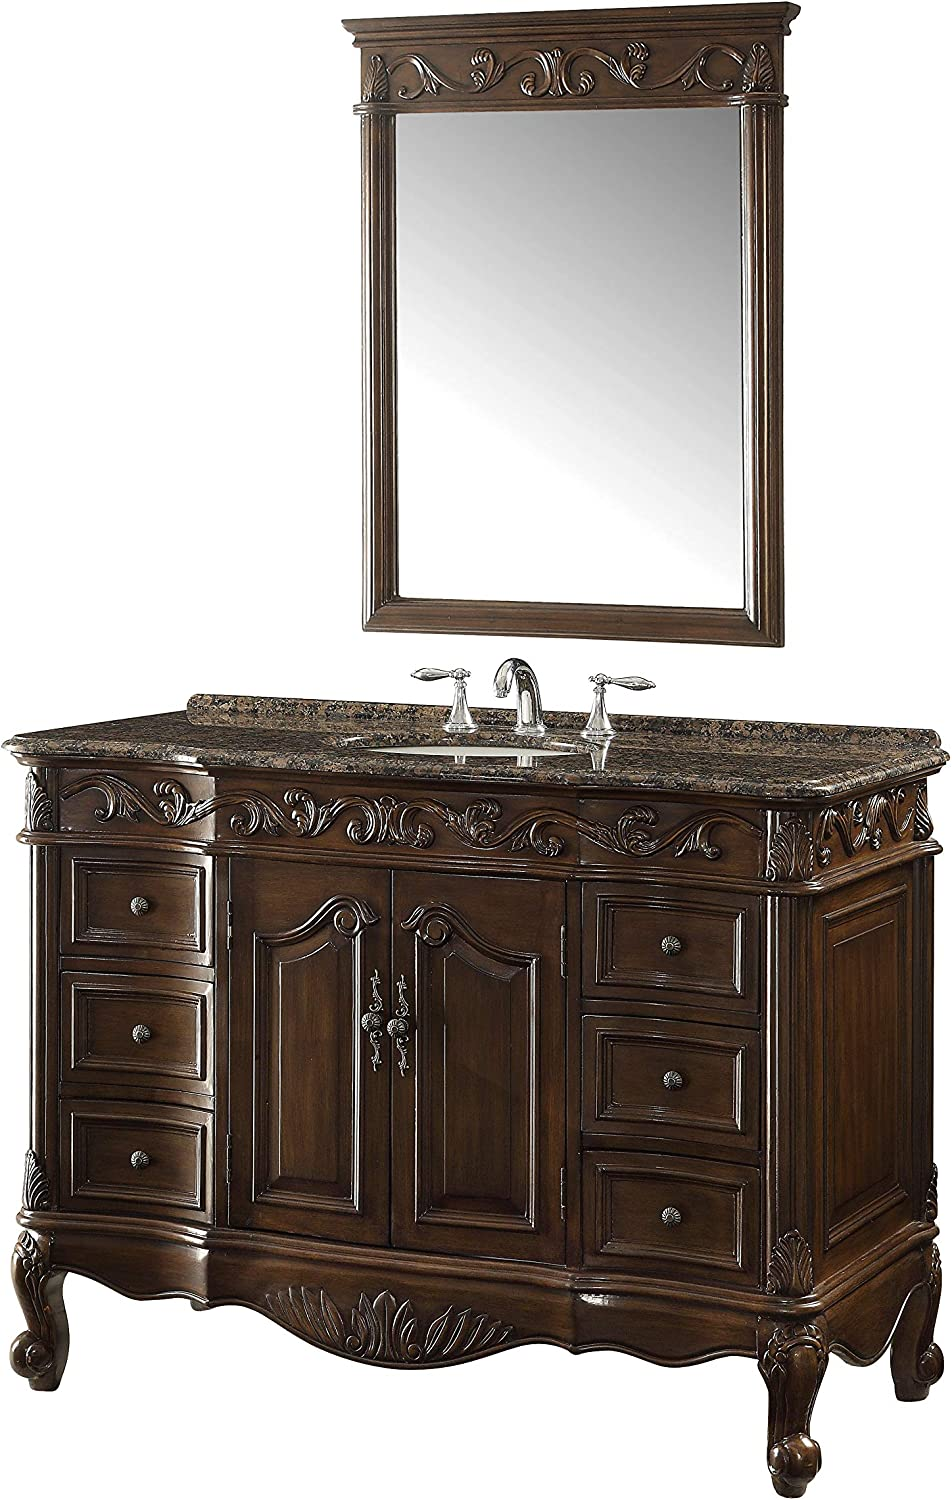 42 Baltic Brown Granite Counter top Beckham Bathroom Sink Vanity Mirror Set SW-3882SB-TK-42 MR-3882